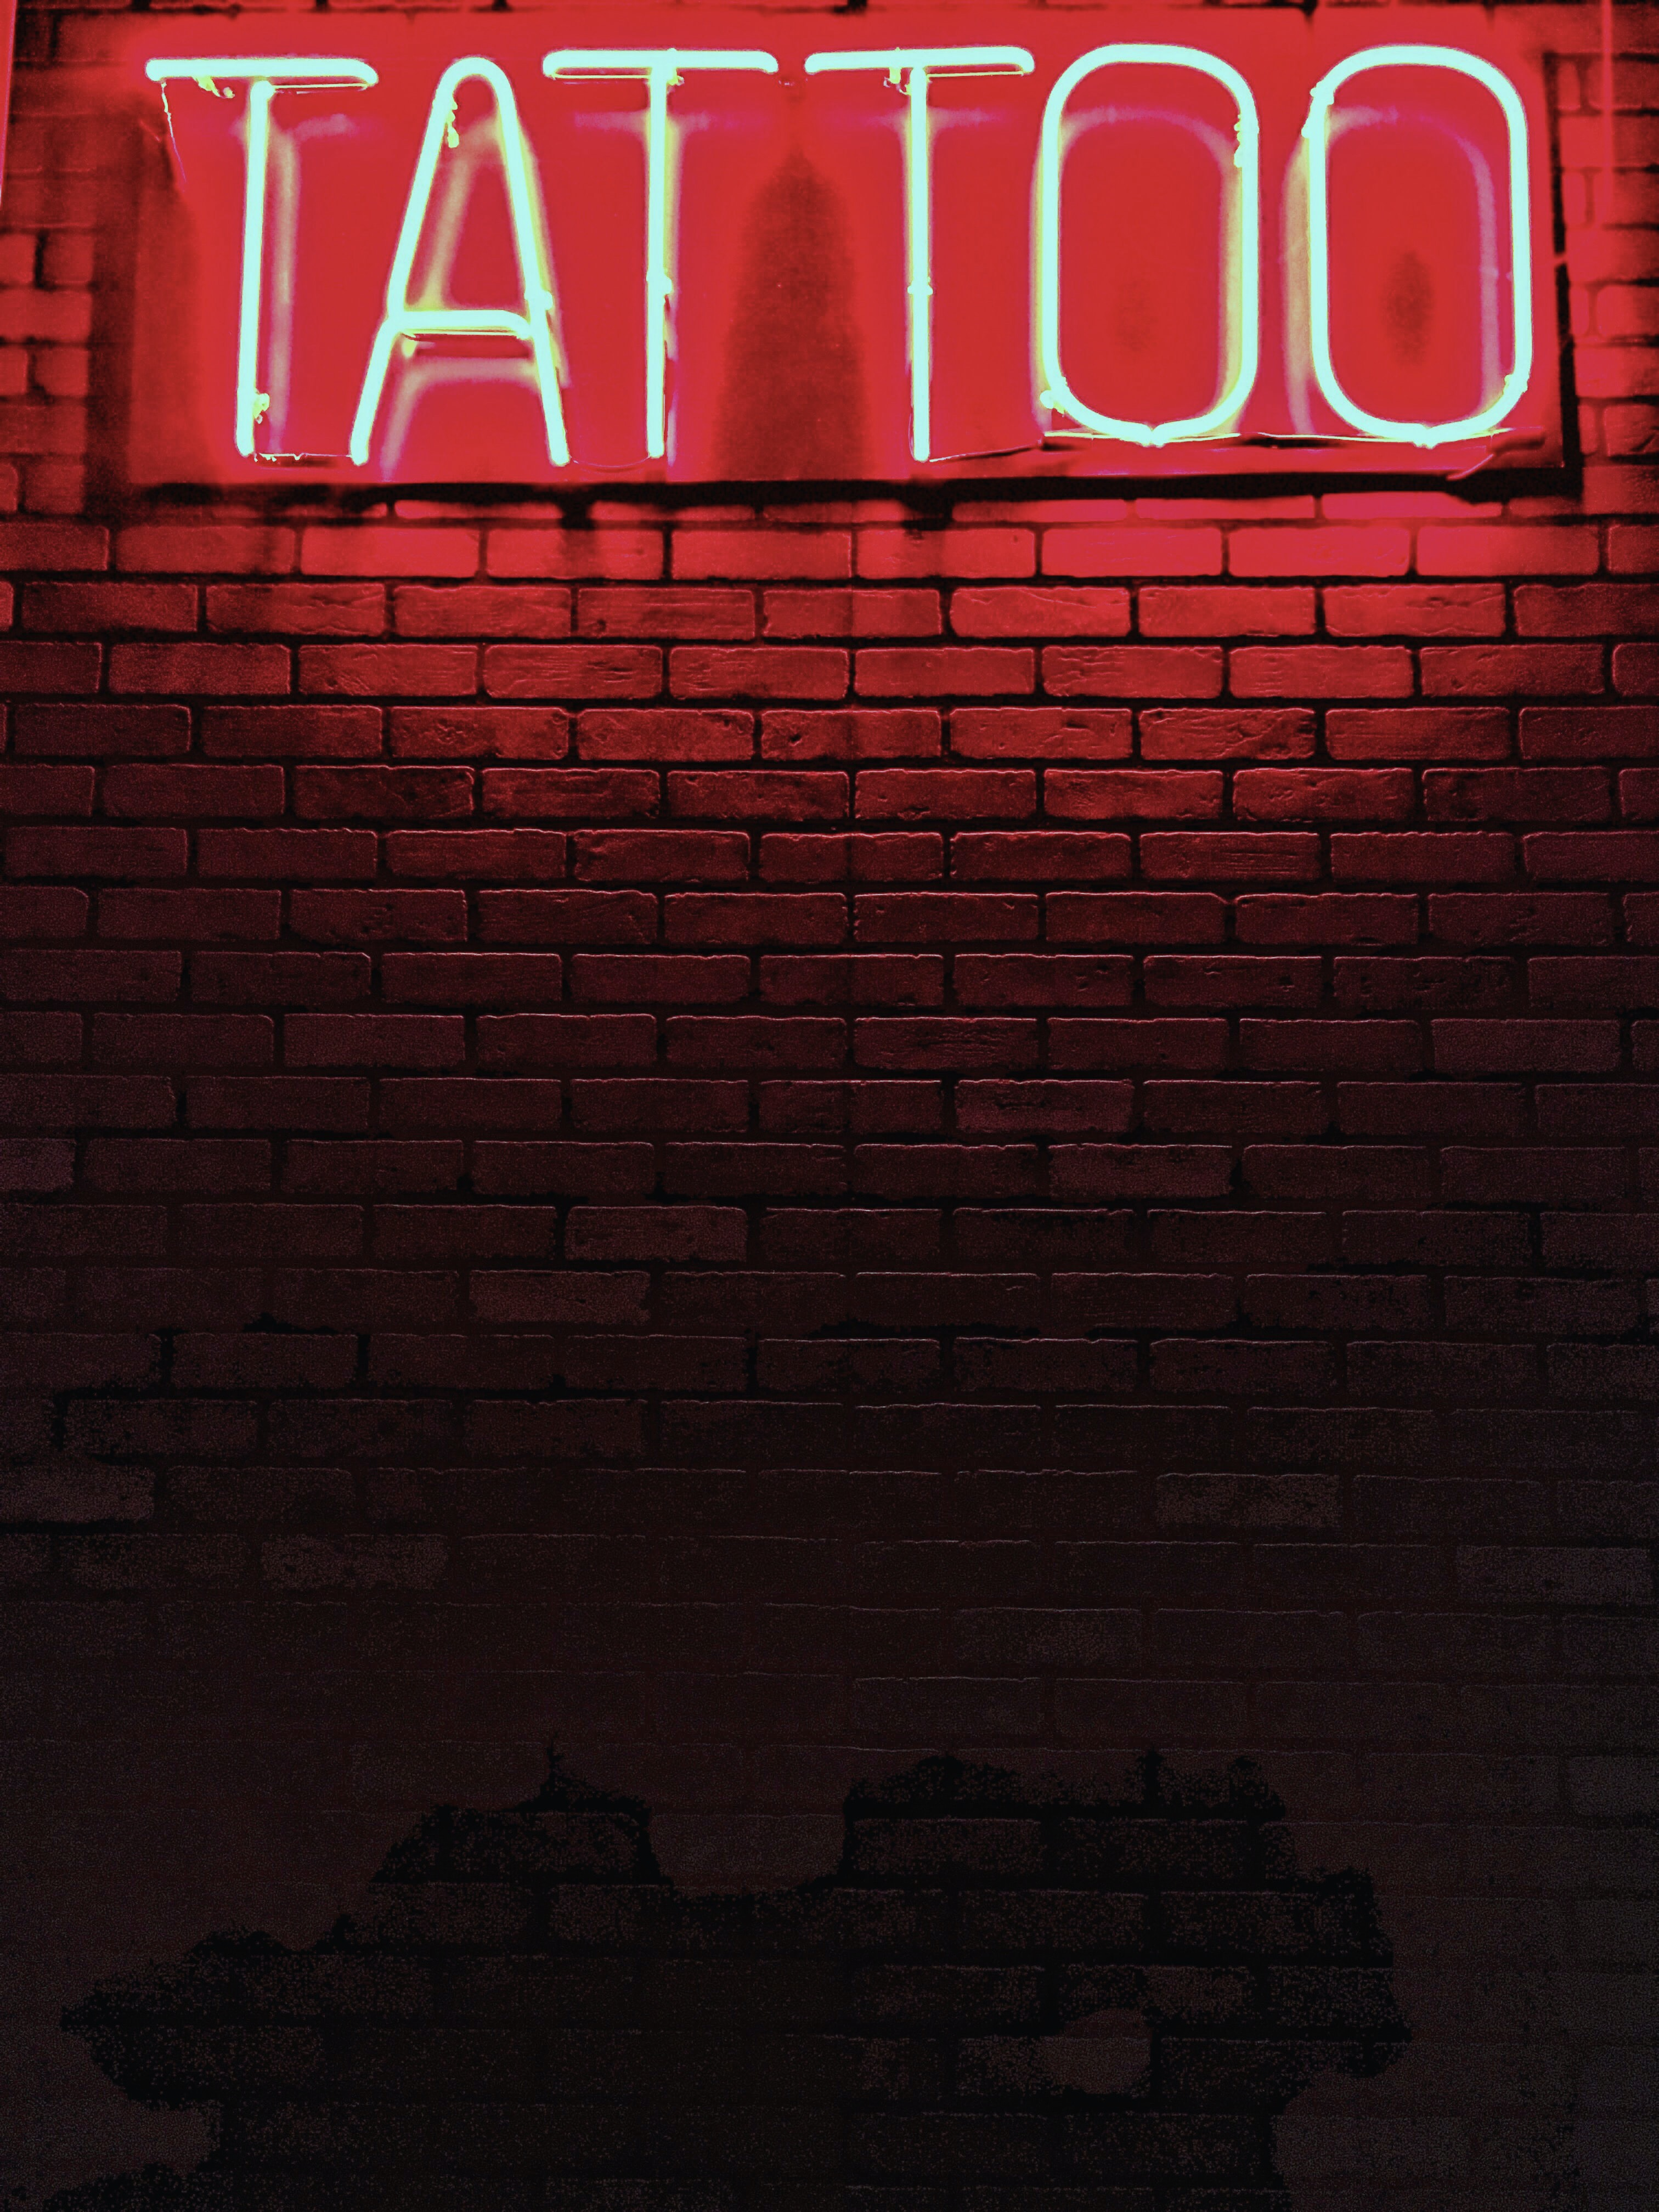 red Tattoo neon light signage